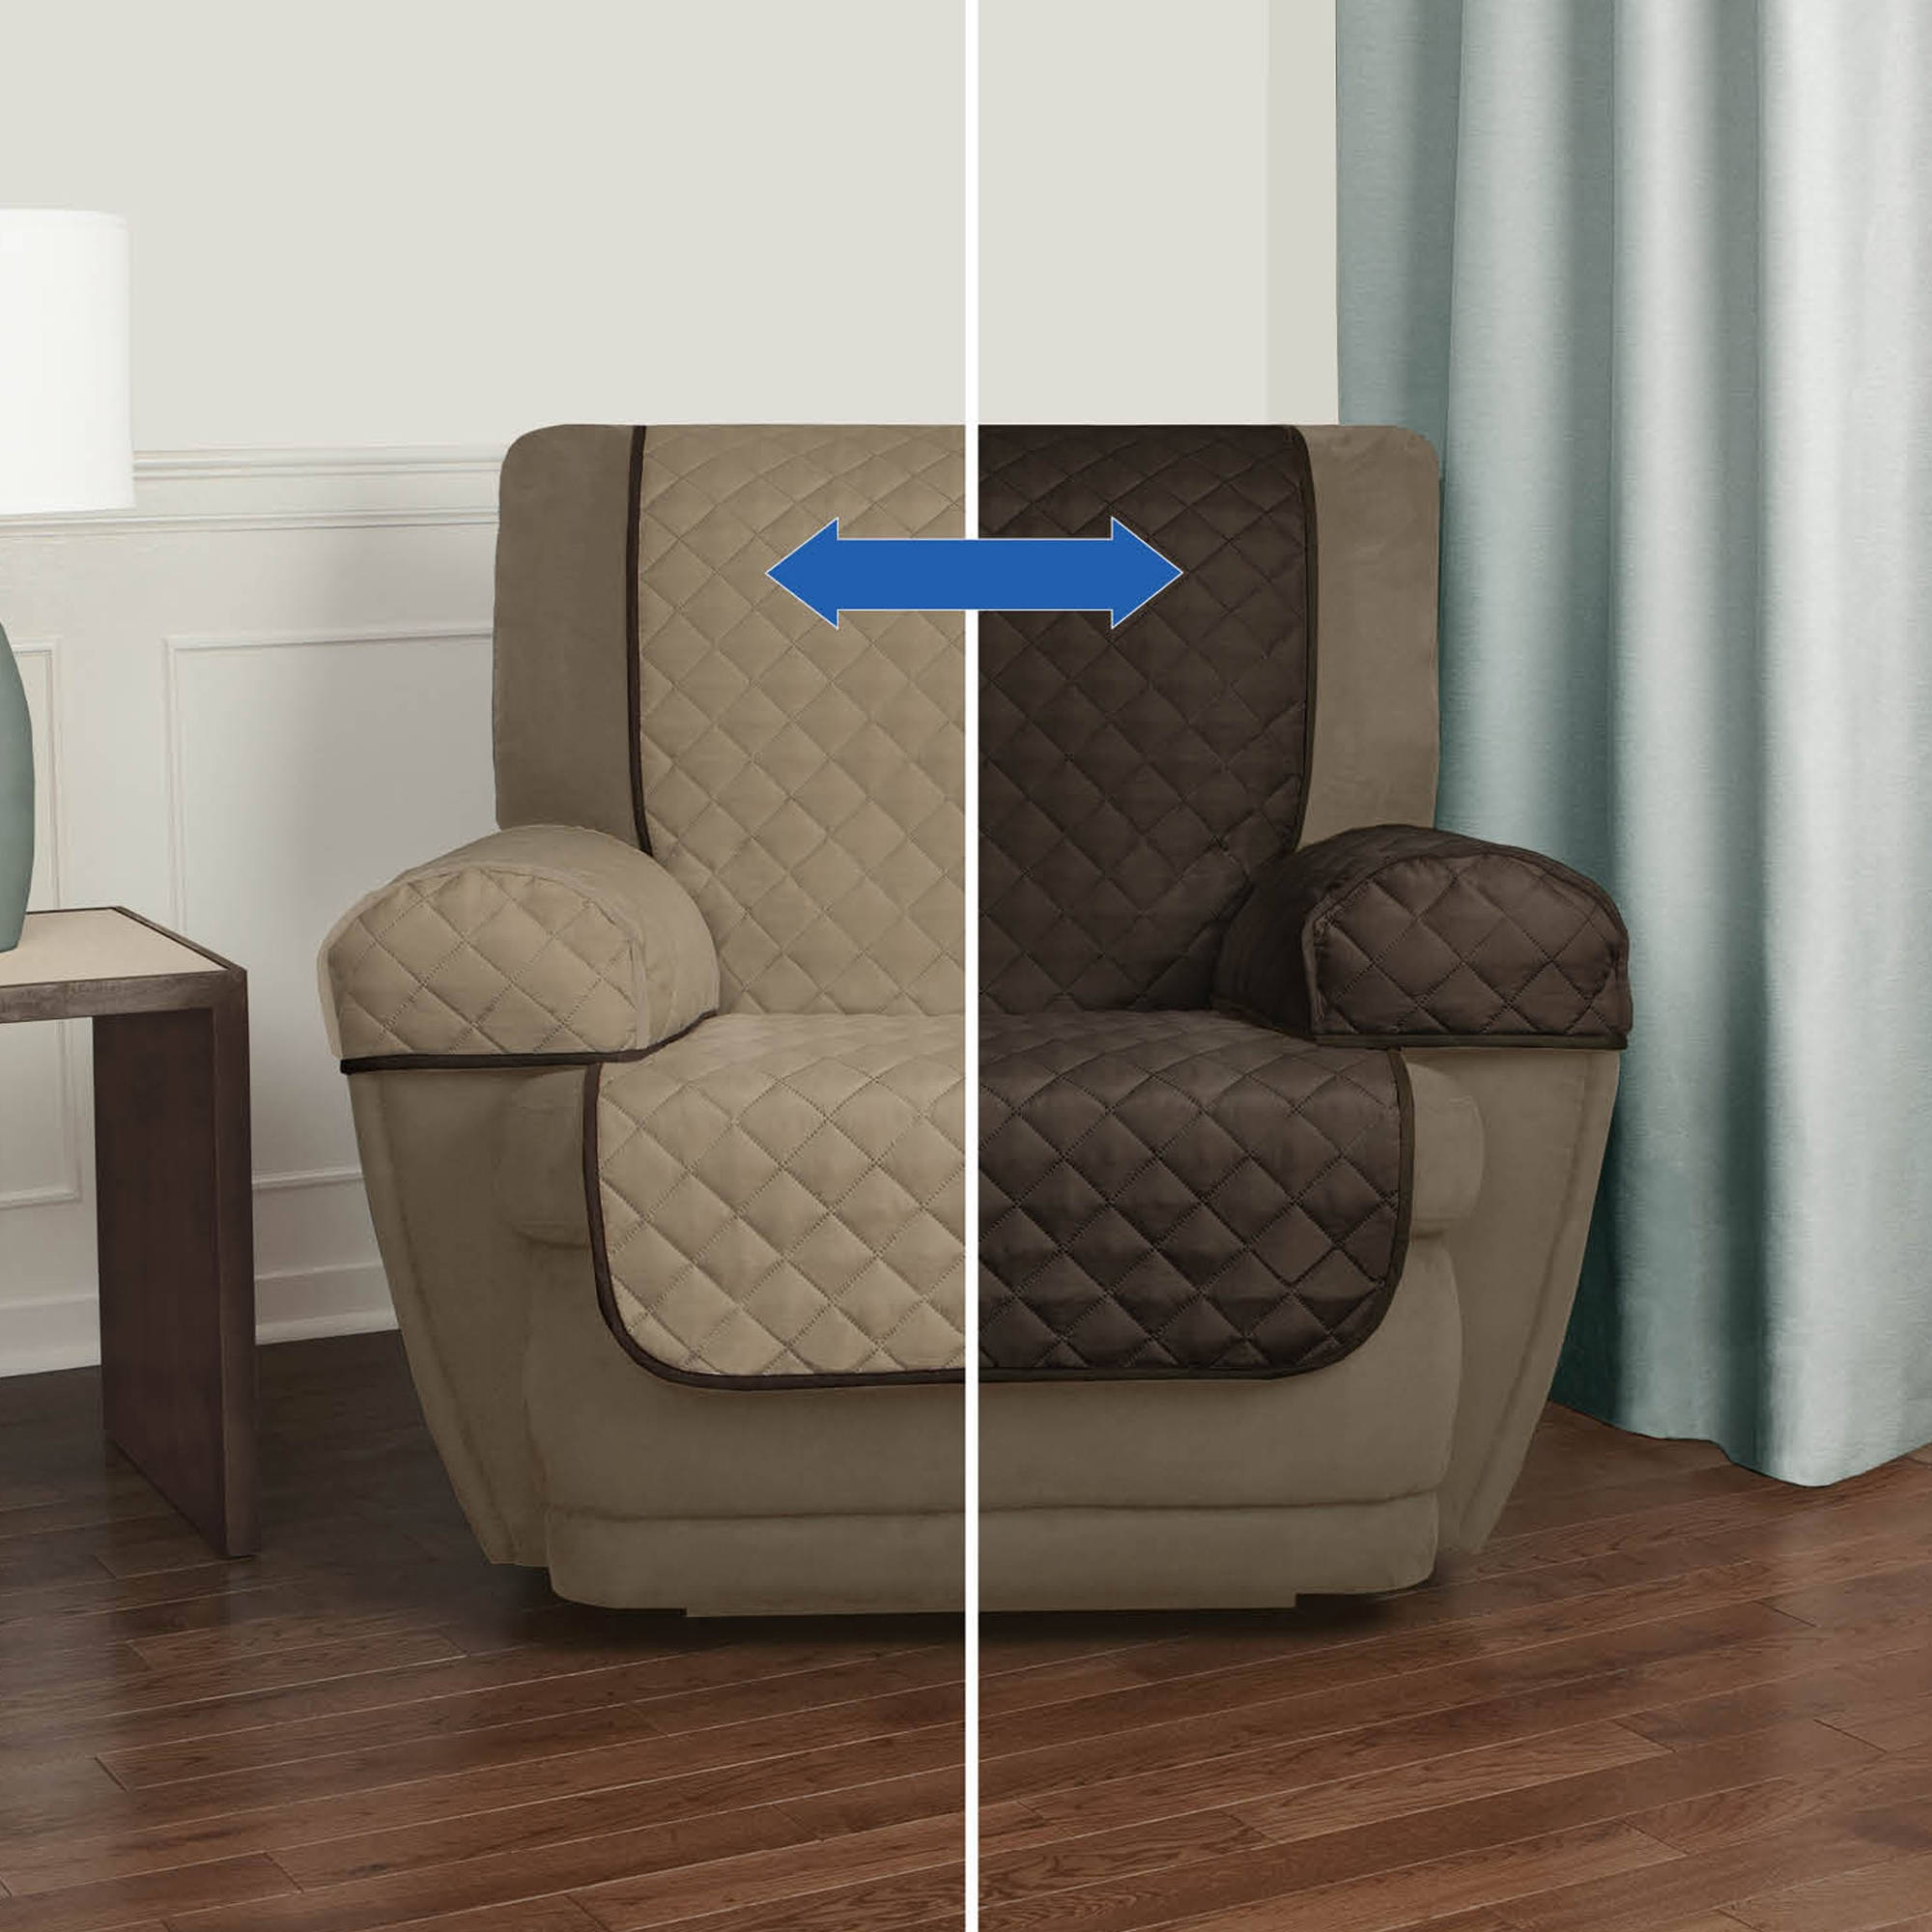 Furniture Couch Covers Walmart For Easily Protect Your Furniture With Regard To Sofa And Chair Covers (Image 4 of 15)